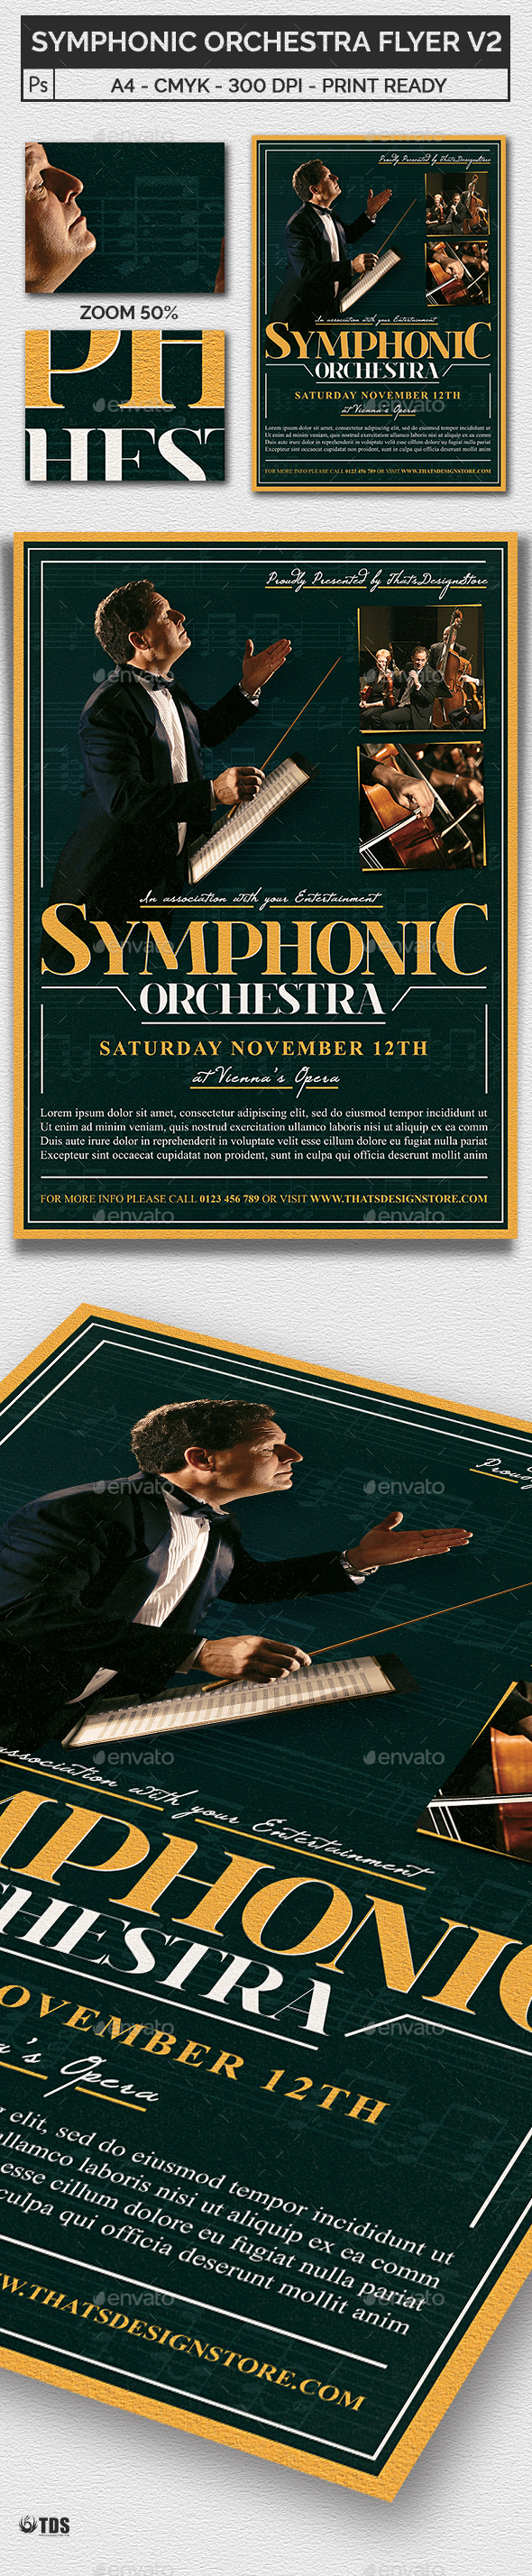 Symphonic Orchestra Flyer Template V2 - Concerts Events